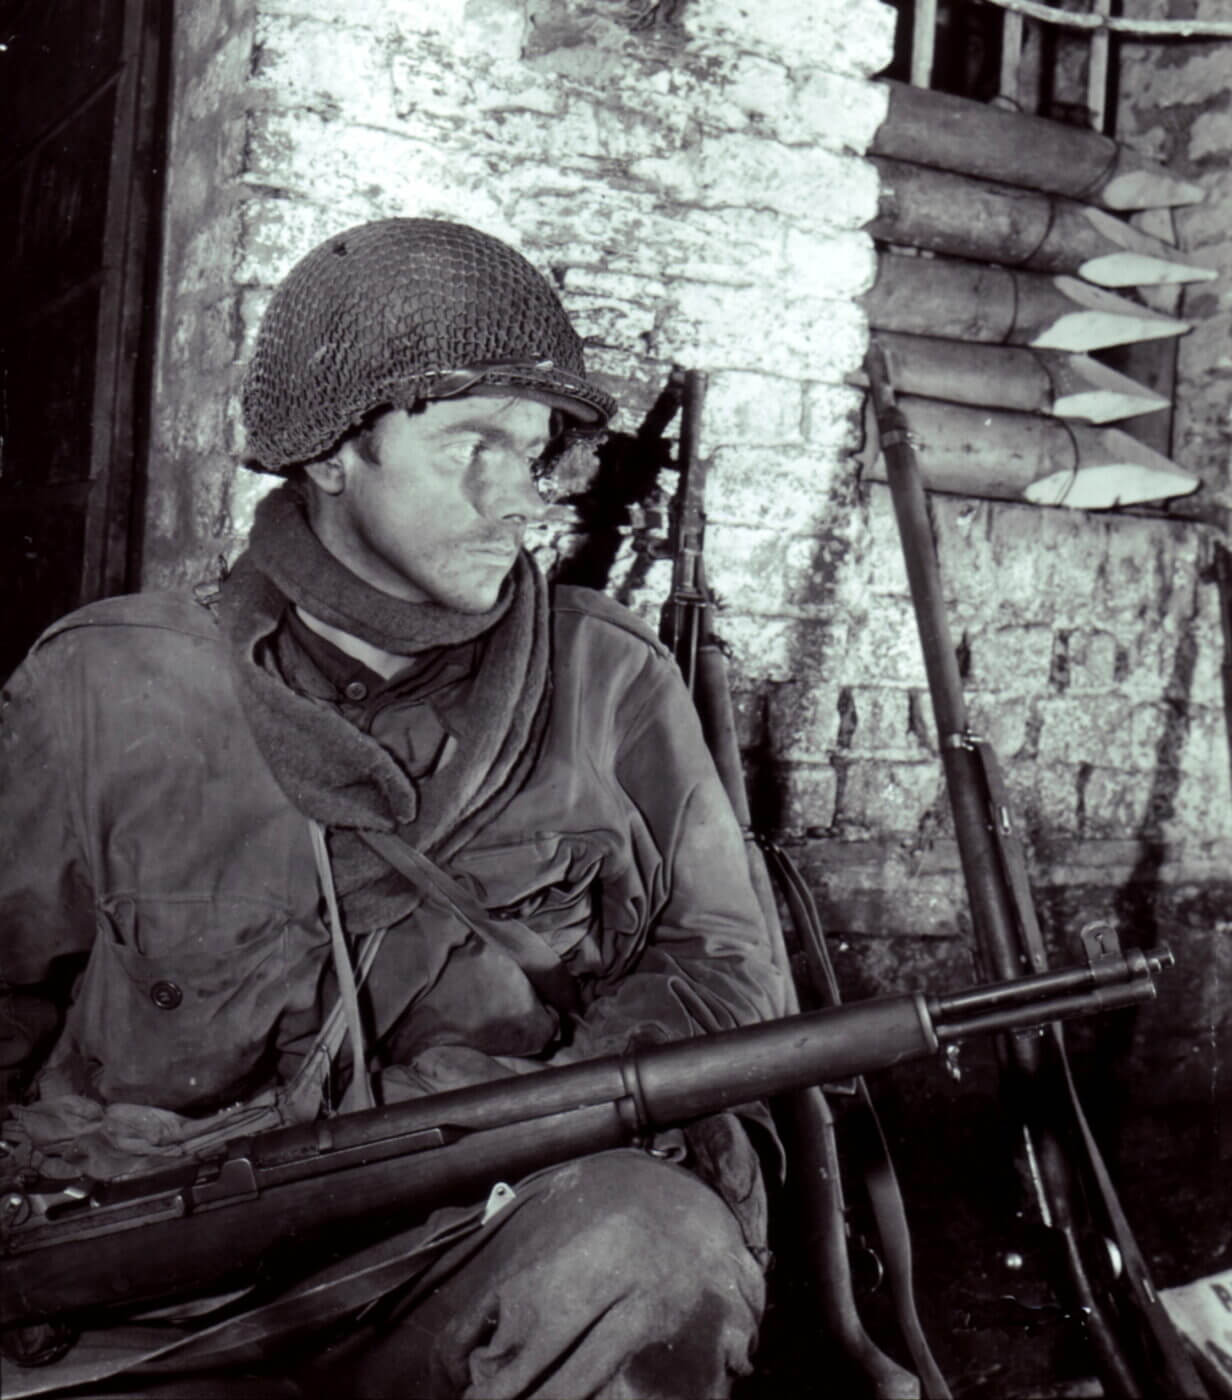 M1 Garand held by GI of the 69th Infantry Division in Germany